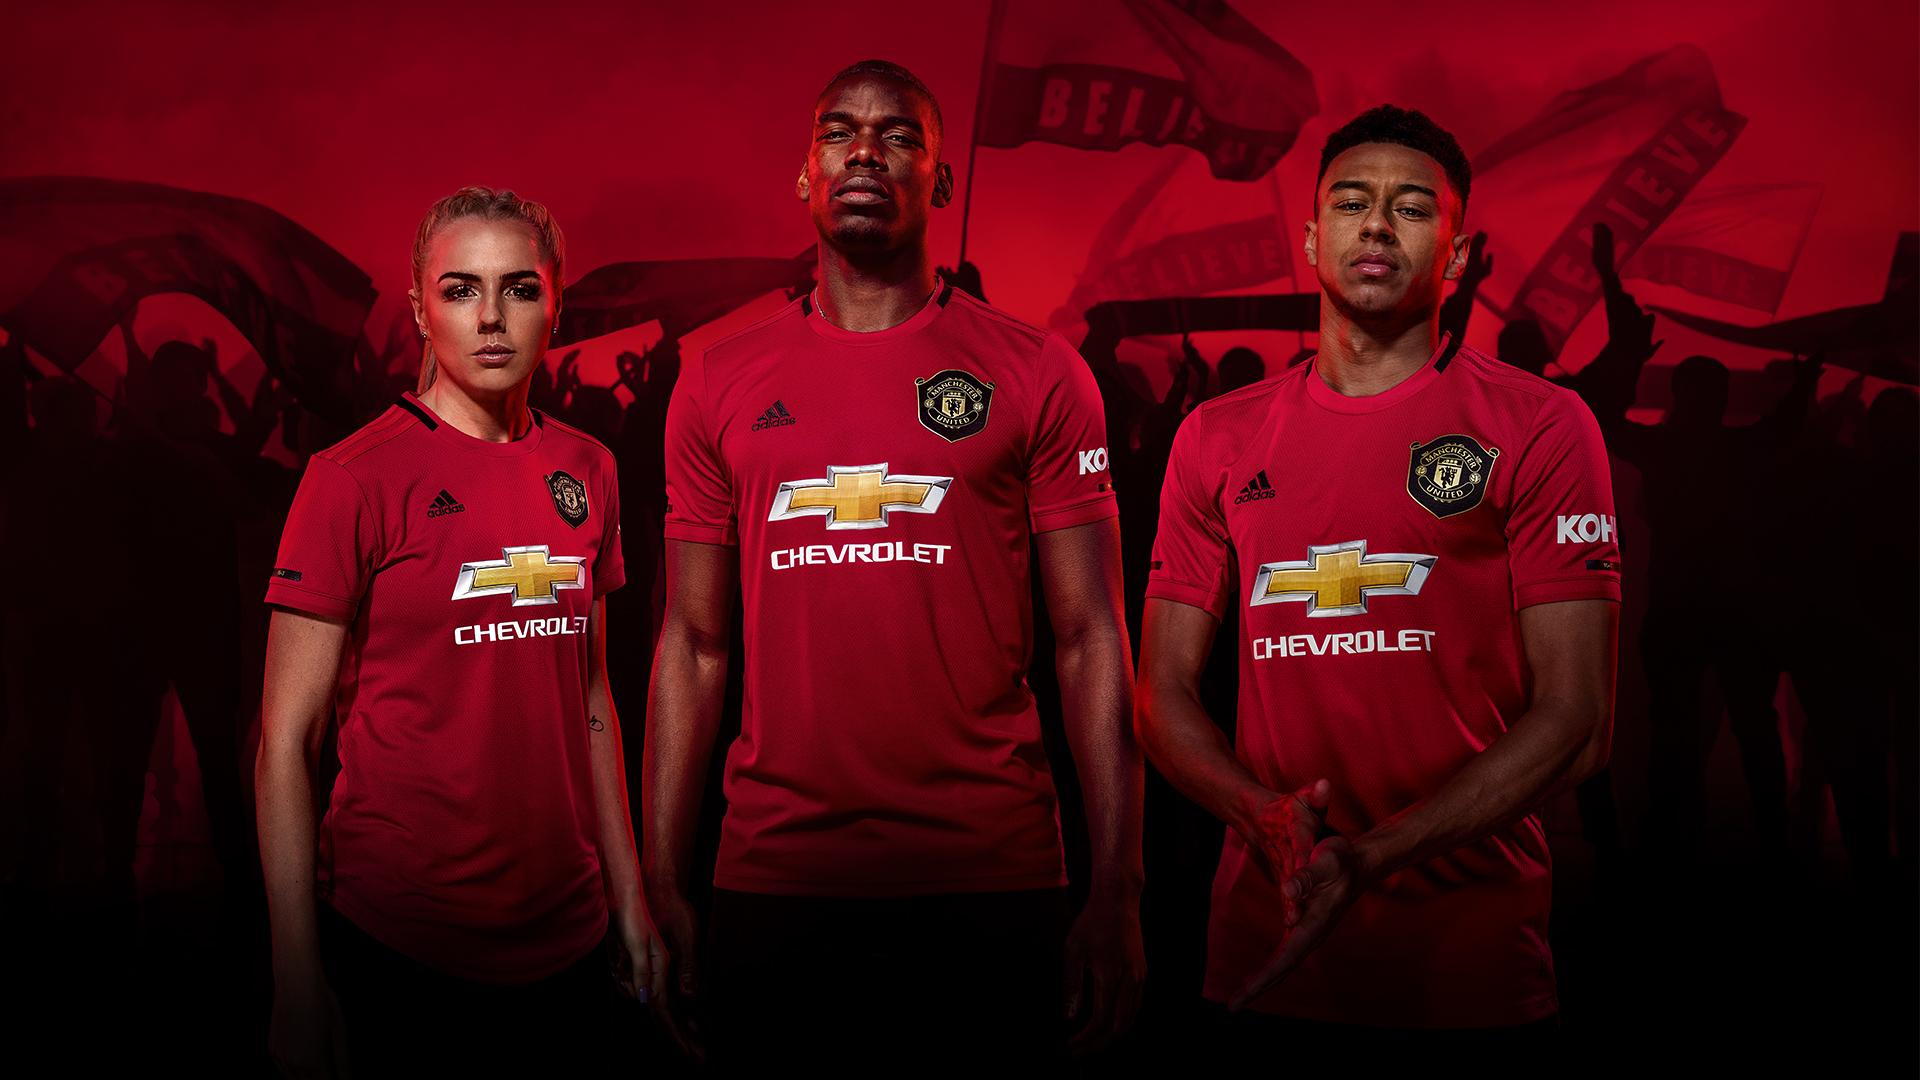 finest selection 0113c 3cc01 adidas and Manchester United Launch 19/20 Home Kit ...